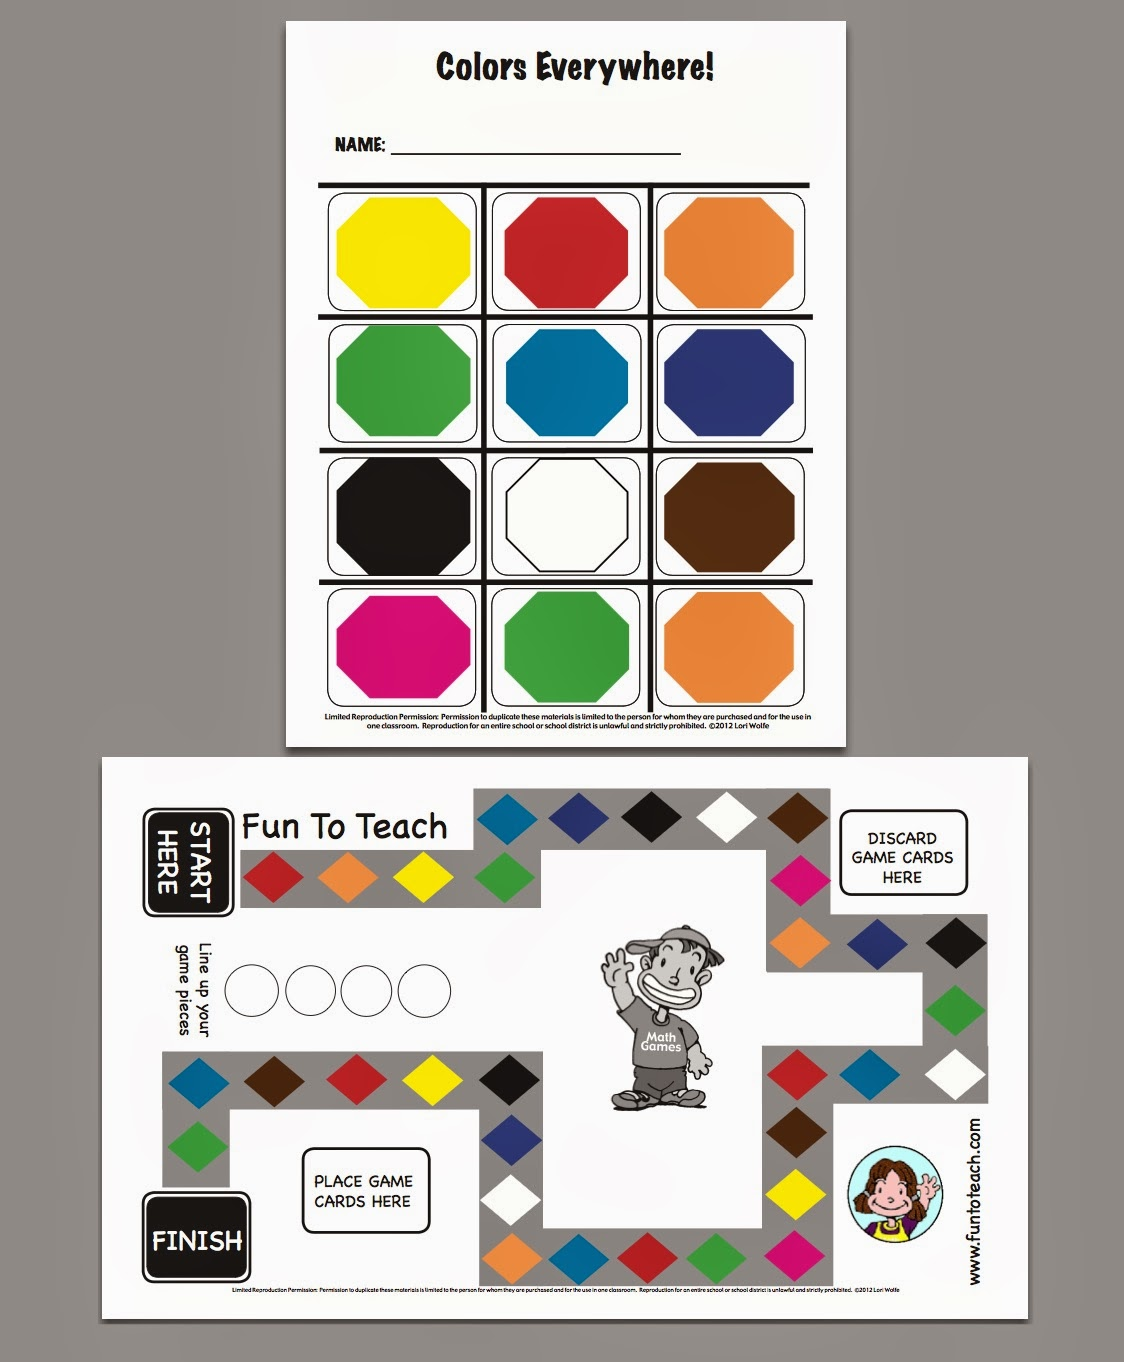 http://www.teacherspayteachers.com/Product/Kinder-Color-Game-Board-and-Color-Cards-291911